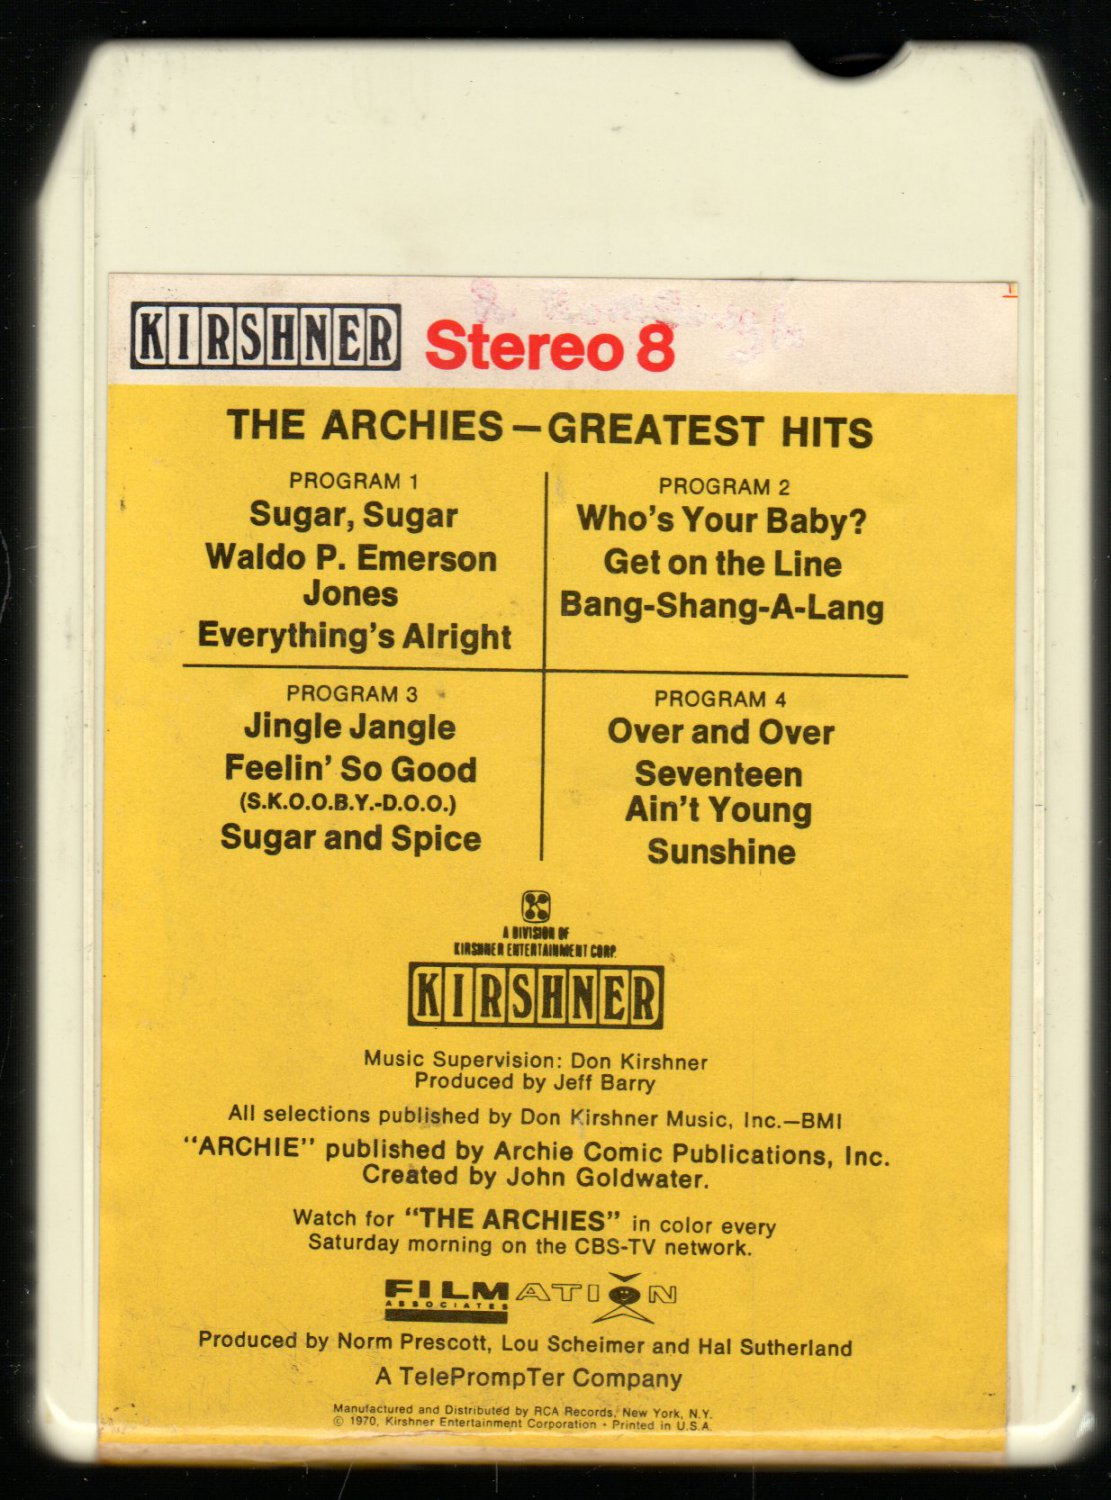 The Archies - Greatest Hits 1970 RCA KIRSHNER A19A 8-track tape